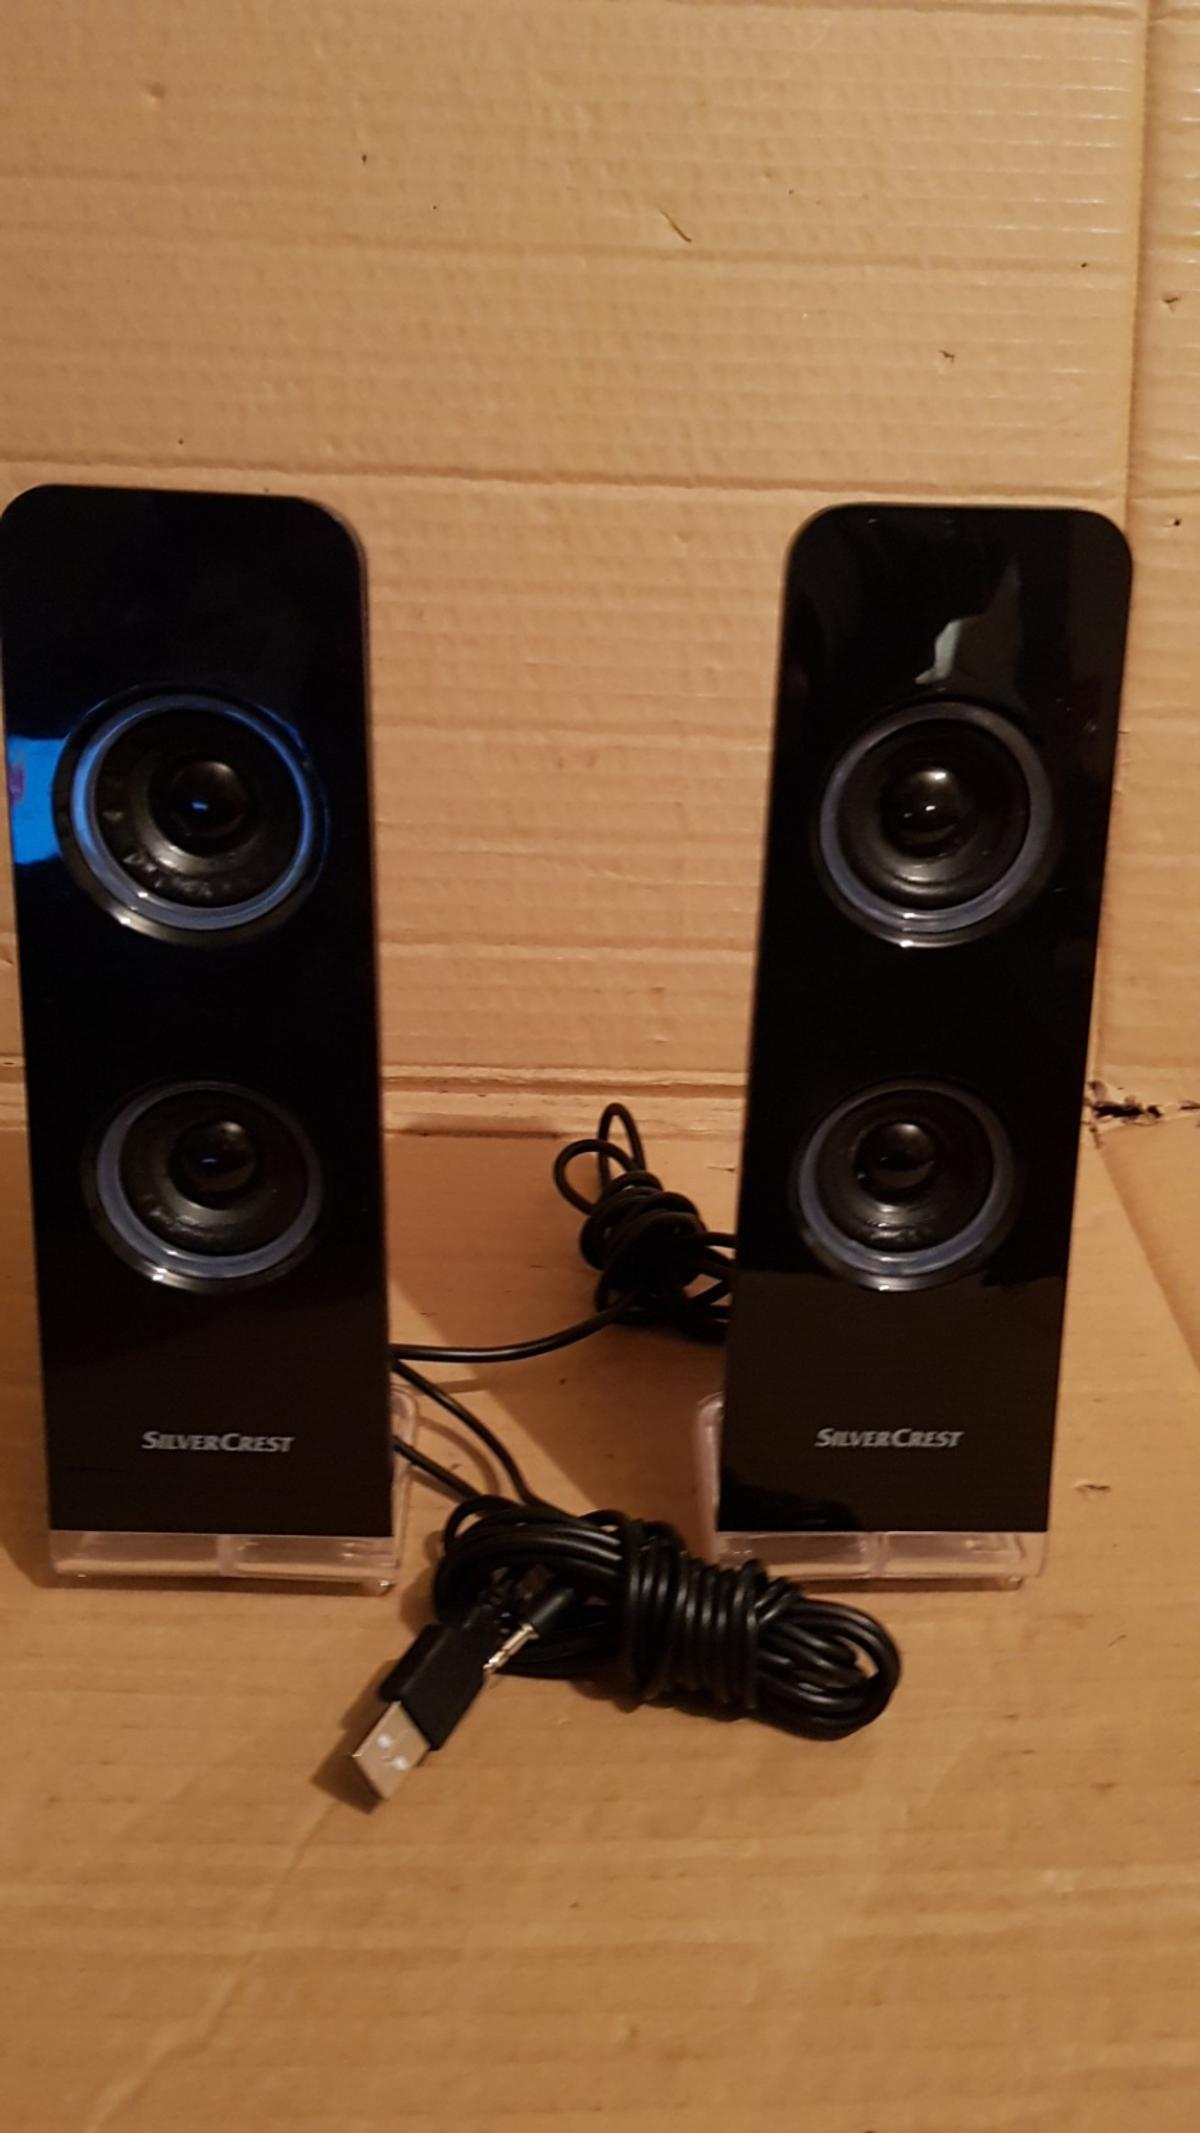 THESE USB SPEAKERS LIGHT UP NEON BLUE , SEE PICTURE, MODEL SLB 1.2 C2 USB 5V NO SILLY OFFERS , collect or pay postage can deliver if local for a small fee of £2.00